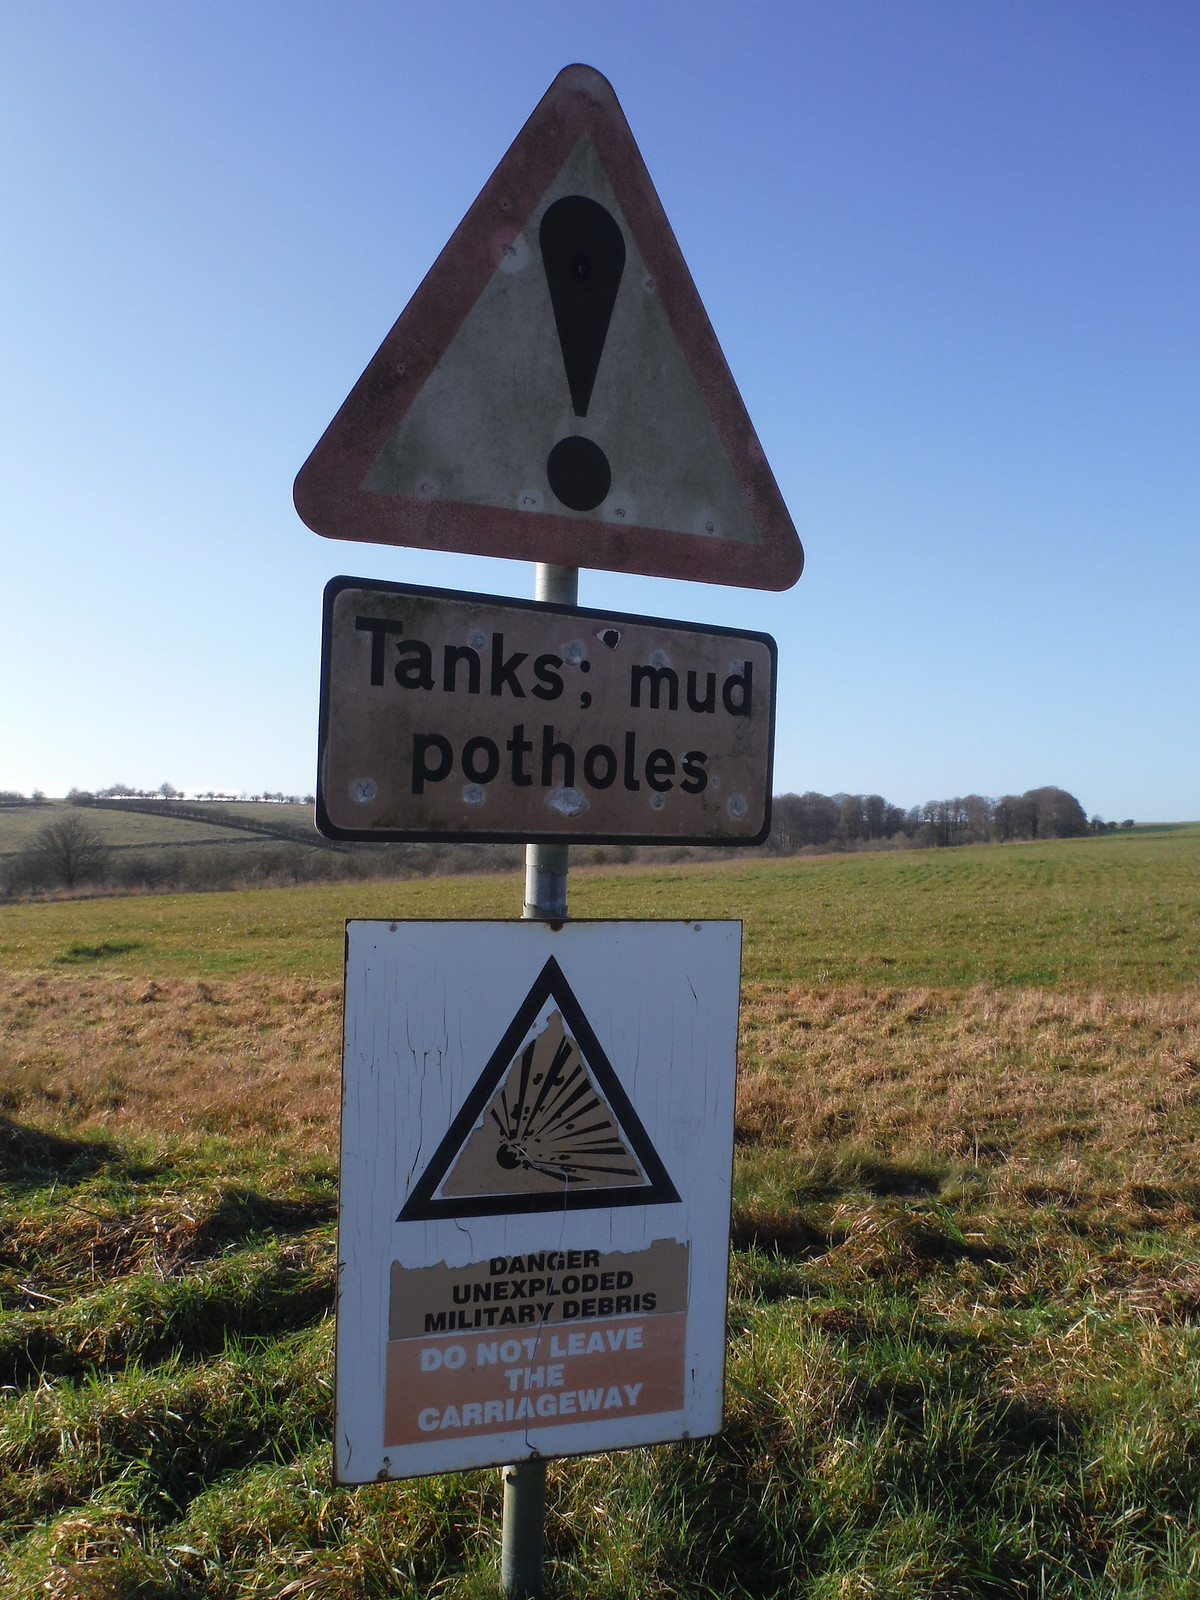 Imber Range, Traffic Sign SWC Walk 286 Westbury to Warminster (via Imber Range)